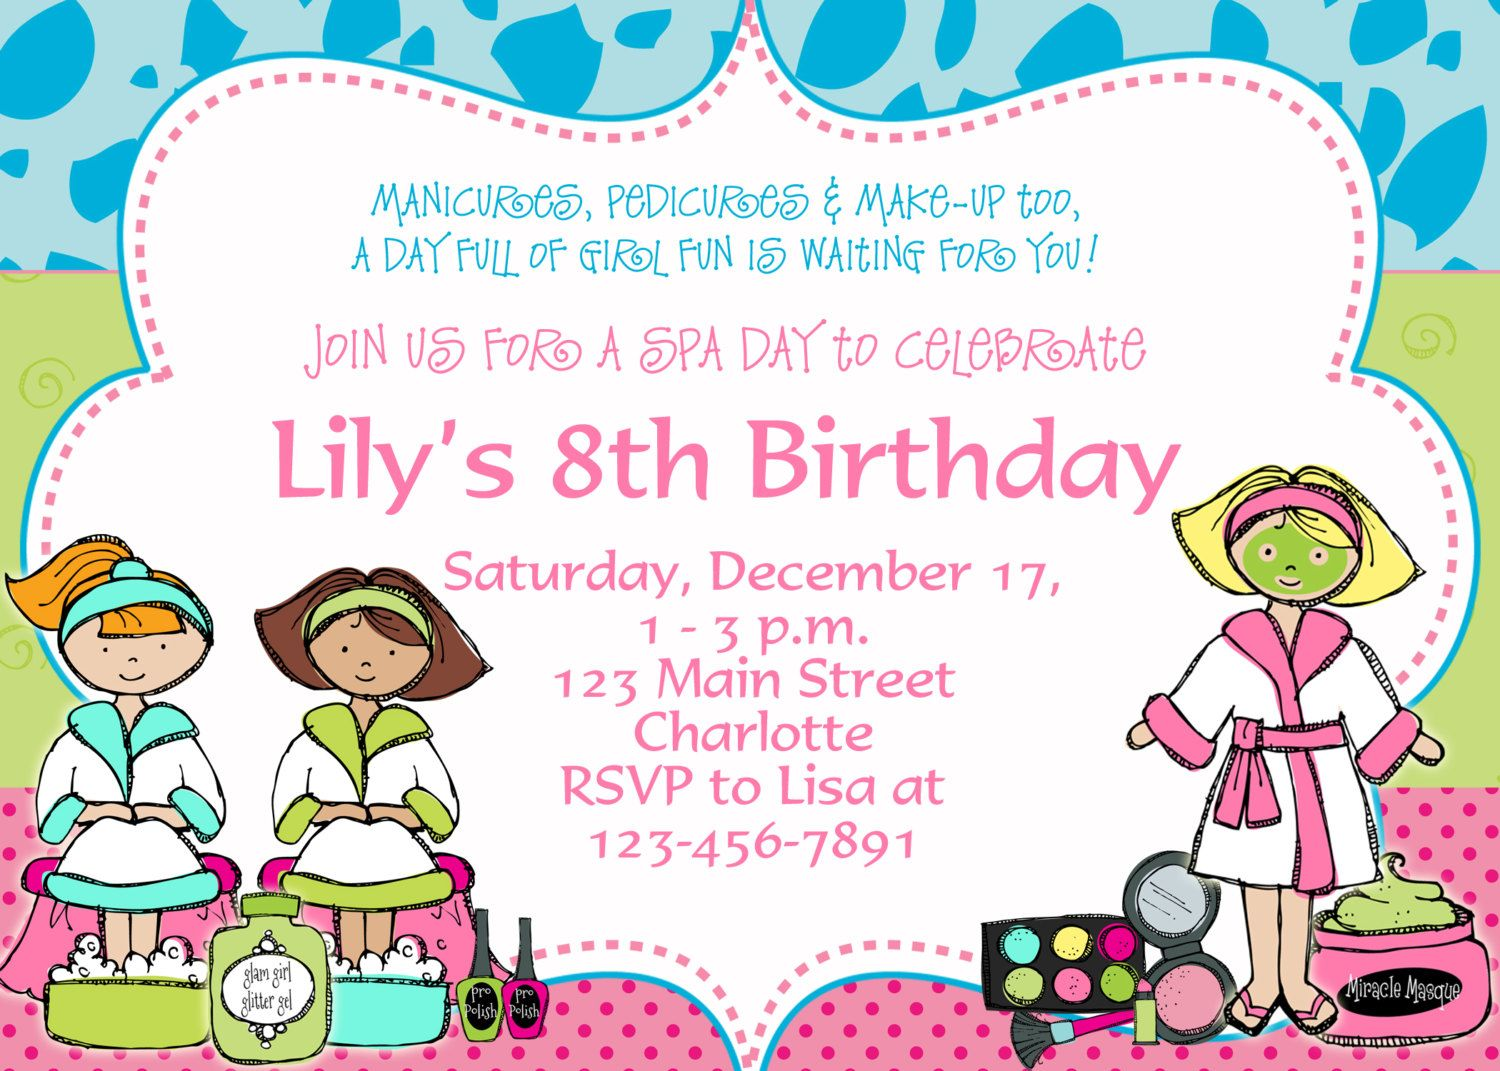 Printable Spa Birthday Party Invitations Spa at Home – Free Birthday Party Invitations for Kids